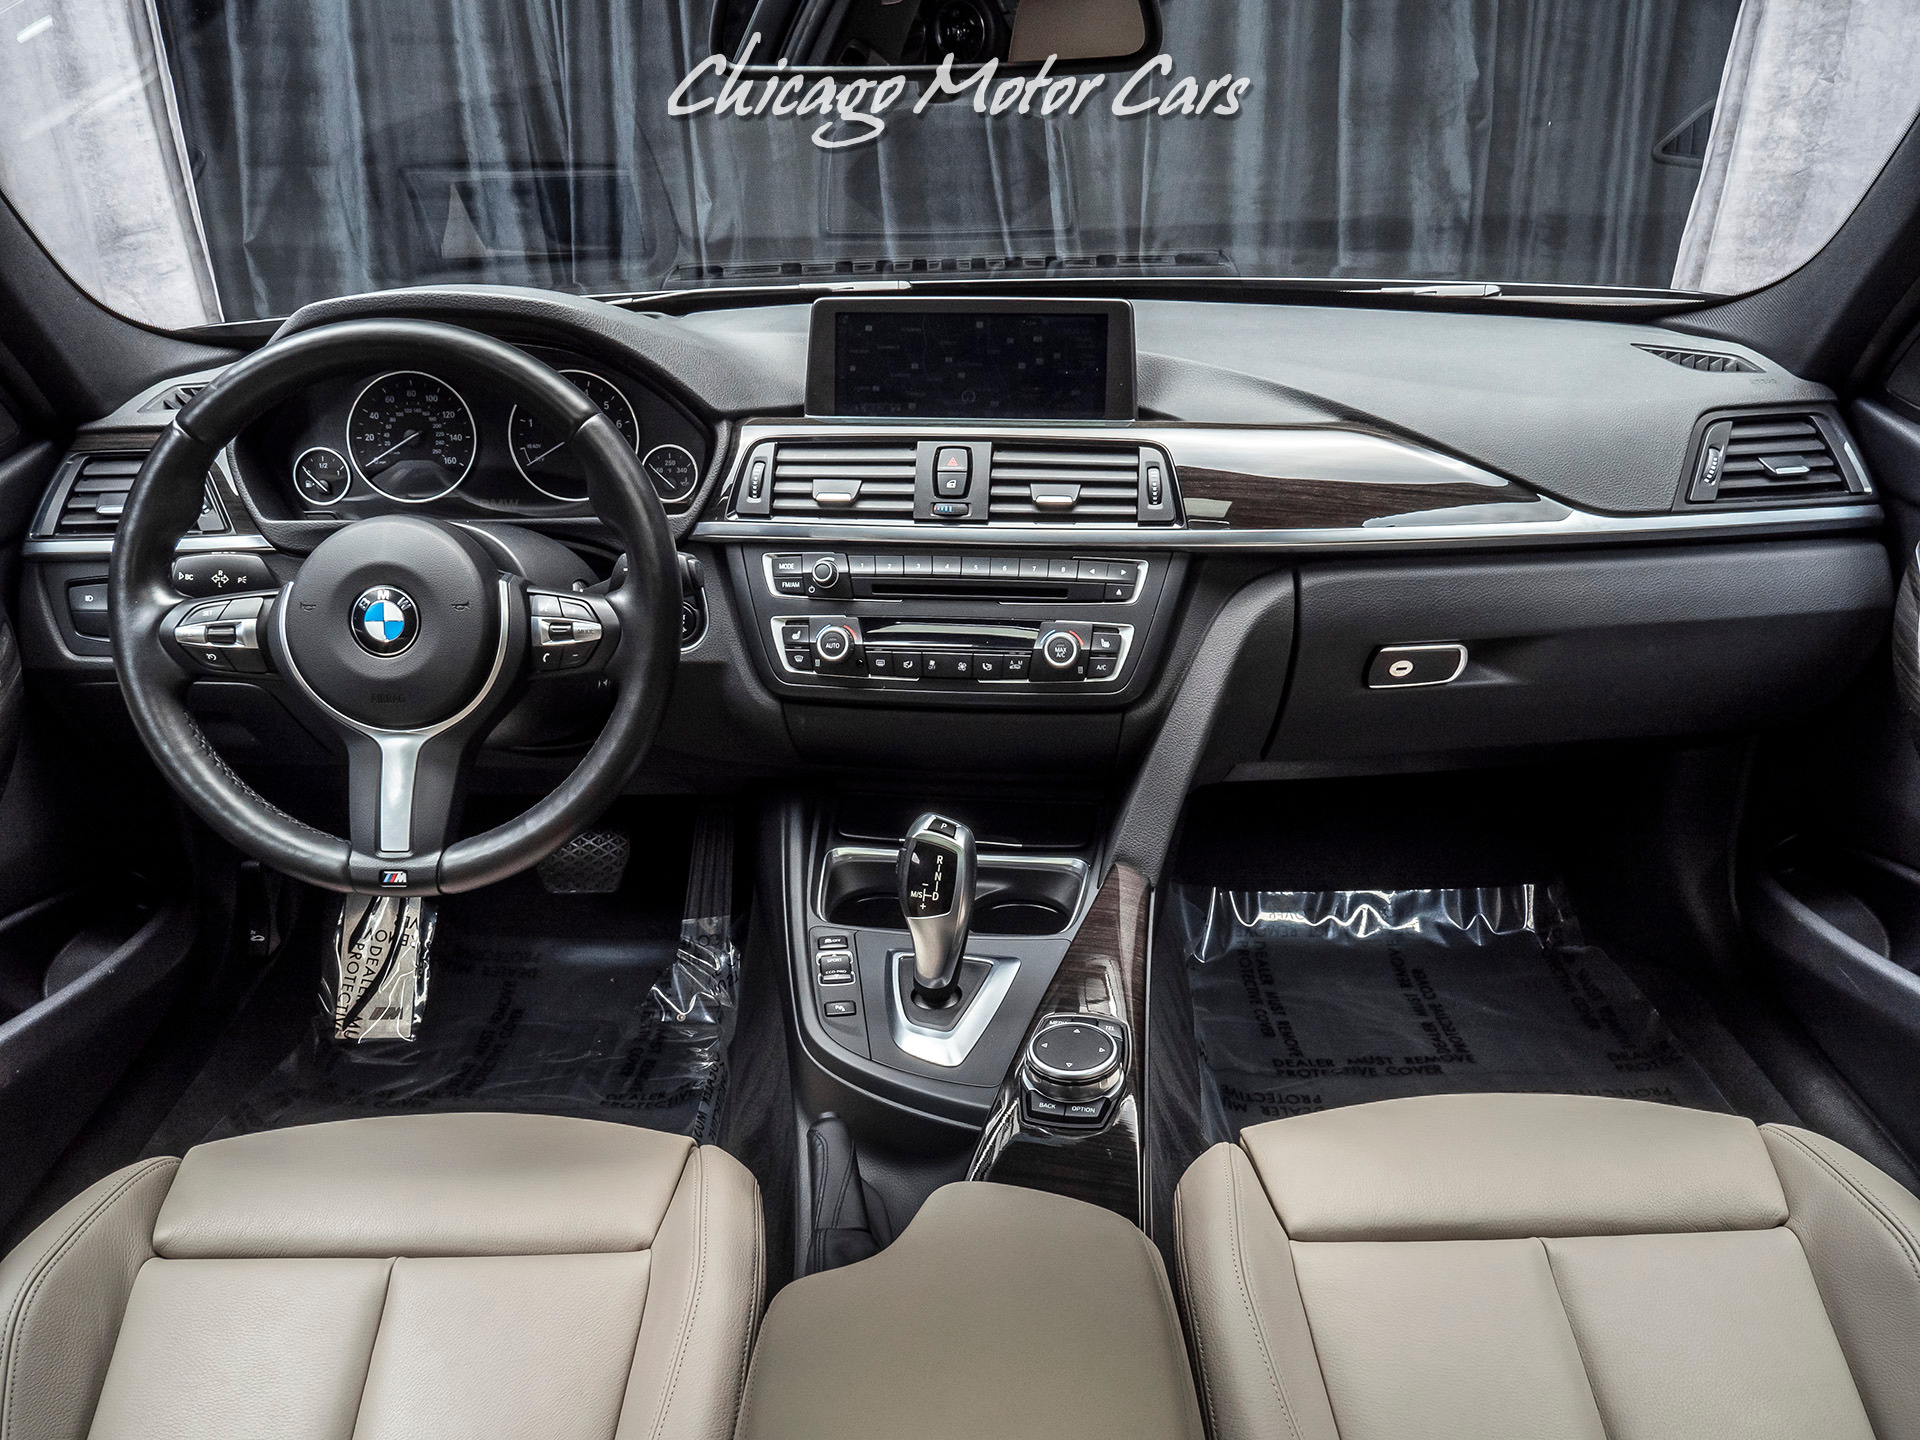 Used 2015 Bmw 328i Xdrive Sedan M Sport Package For Sale Special Pricing Chicago Motor Cars Stock 15965